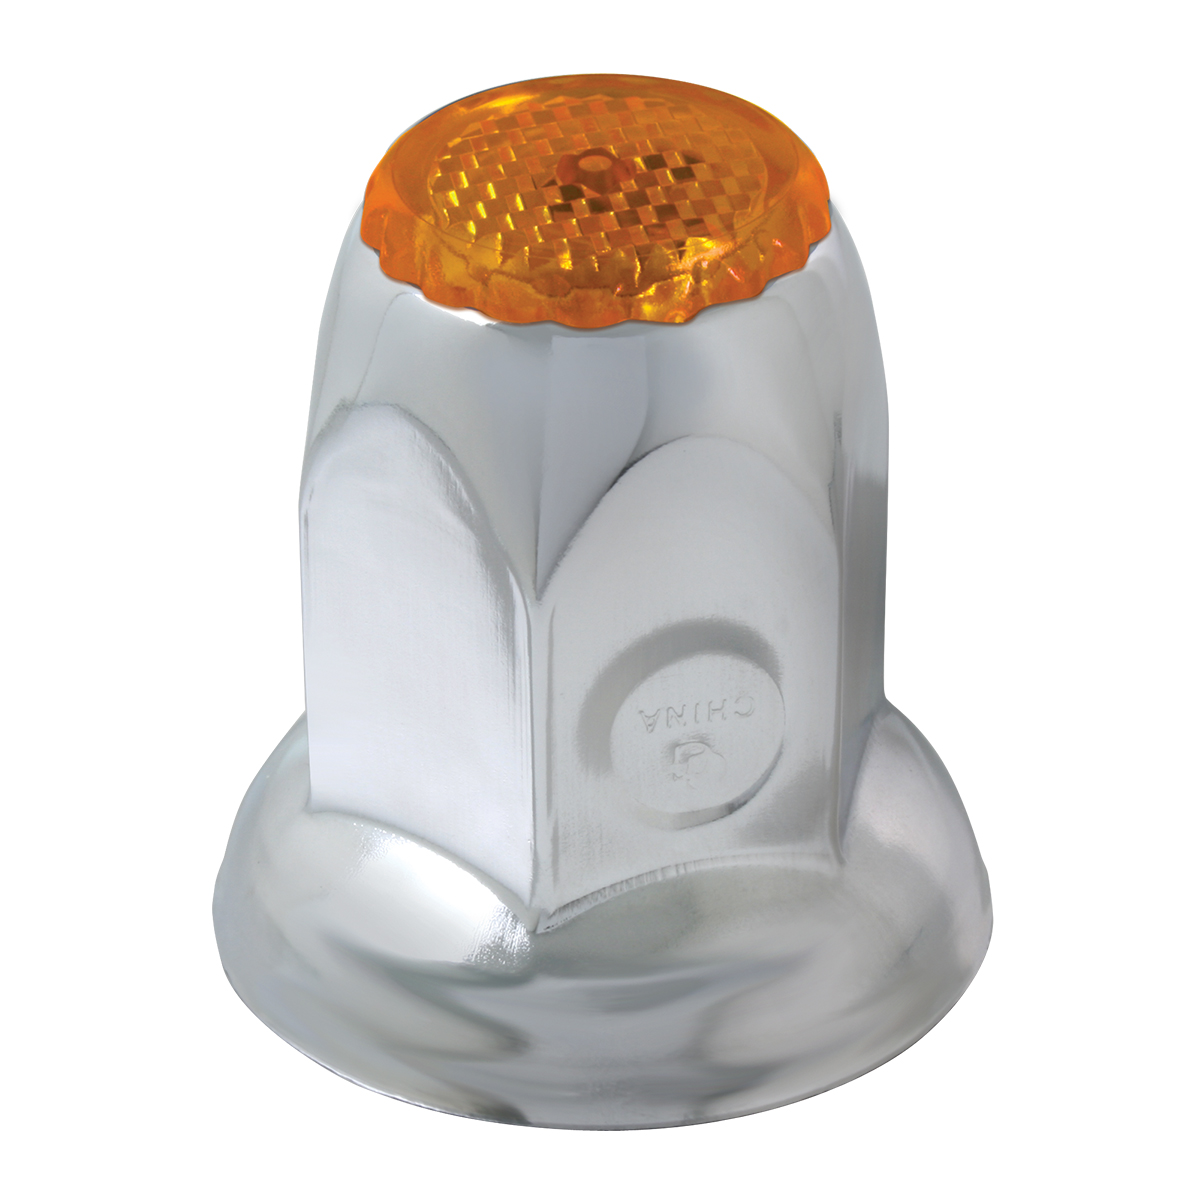 10490 Chrome Steel Amber Reflector Push-On Lug Nut Cover w/ Flange